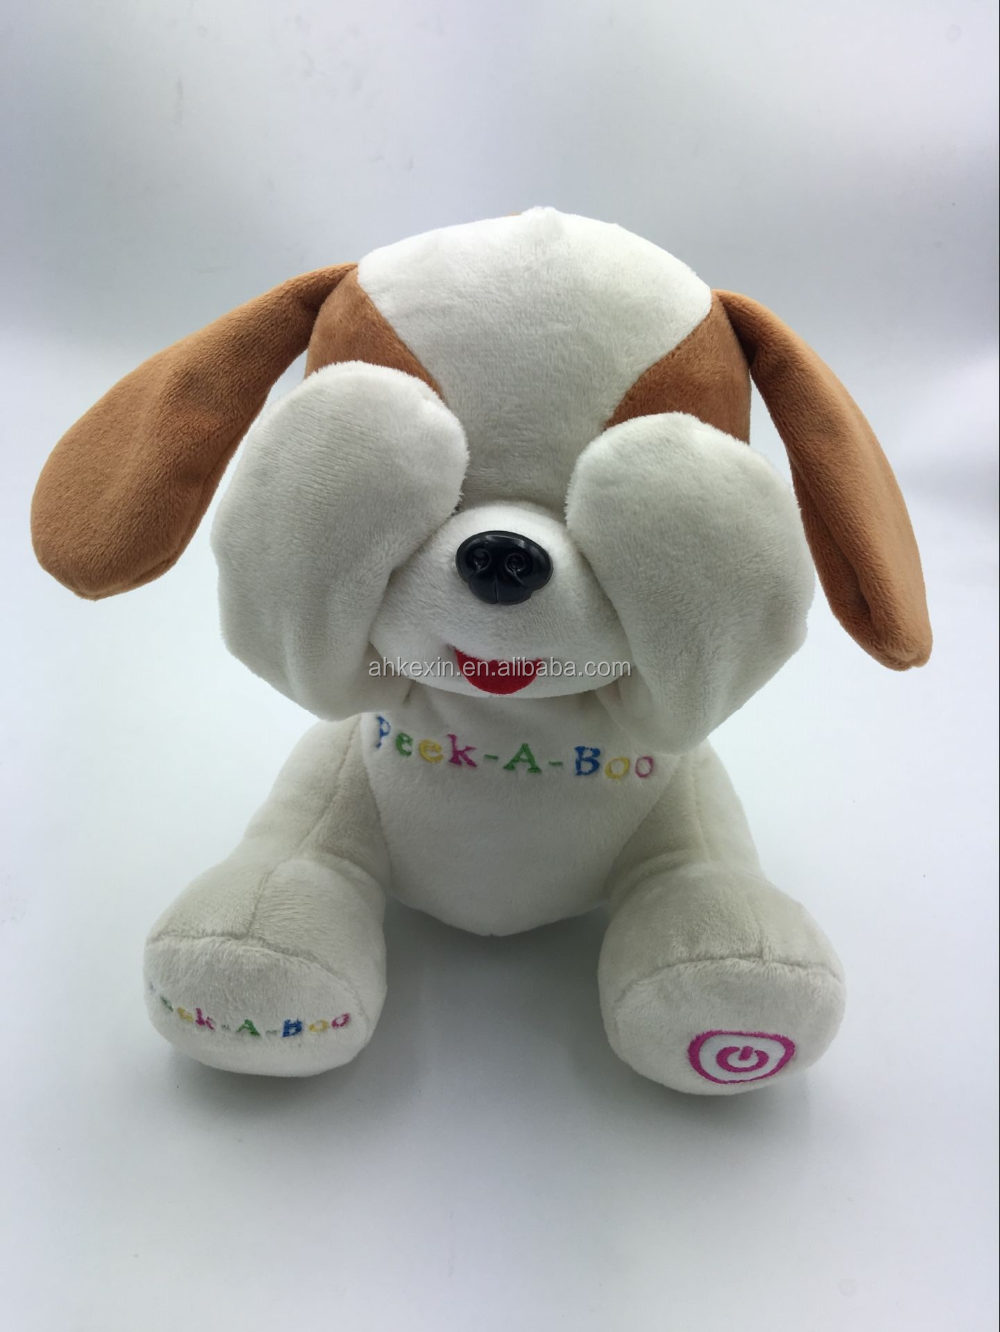 Plush electric dog toy for baby